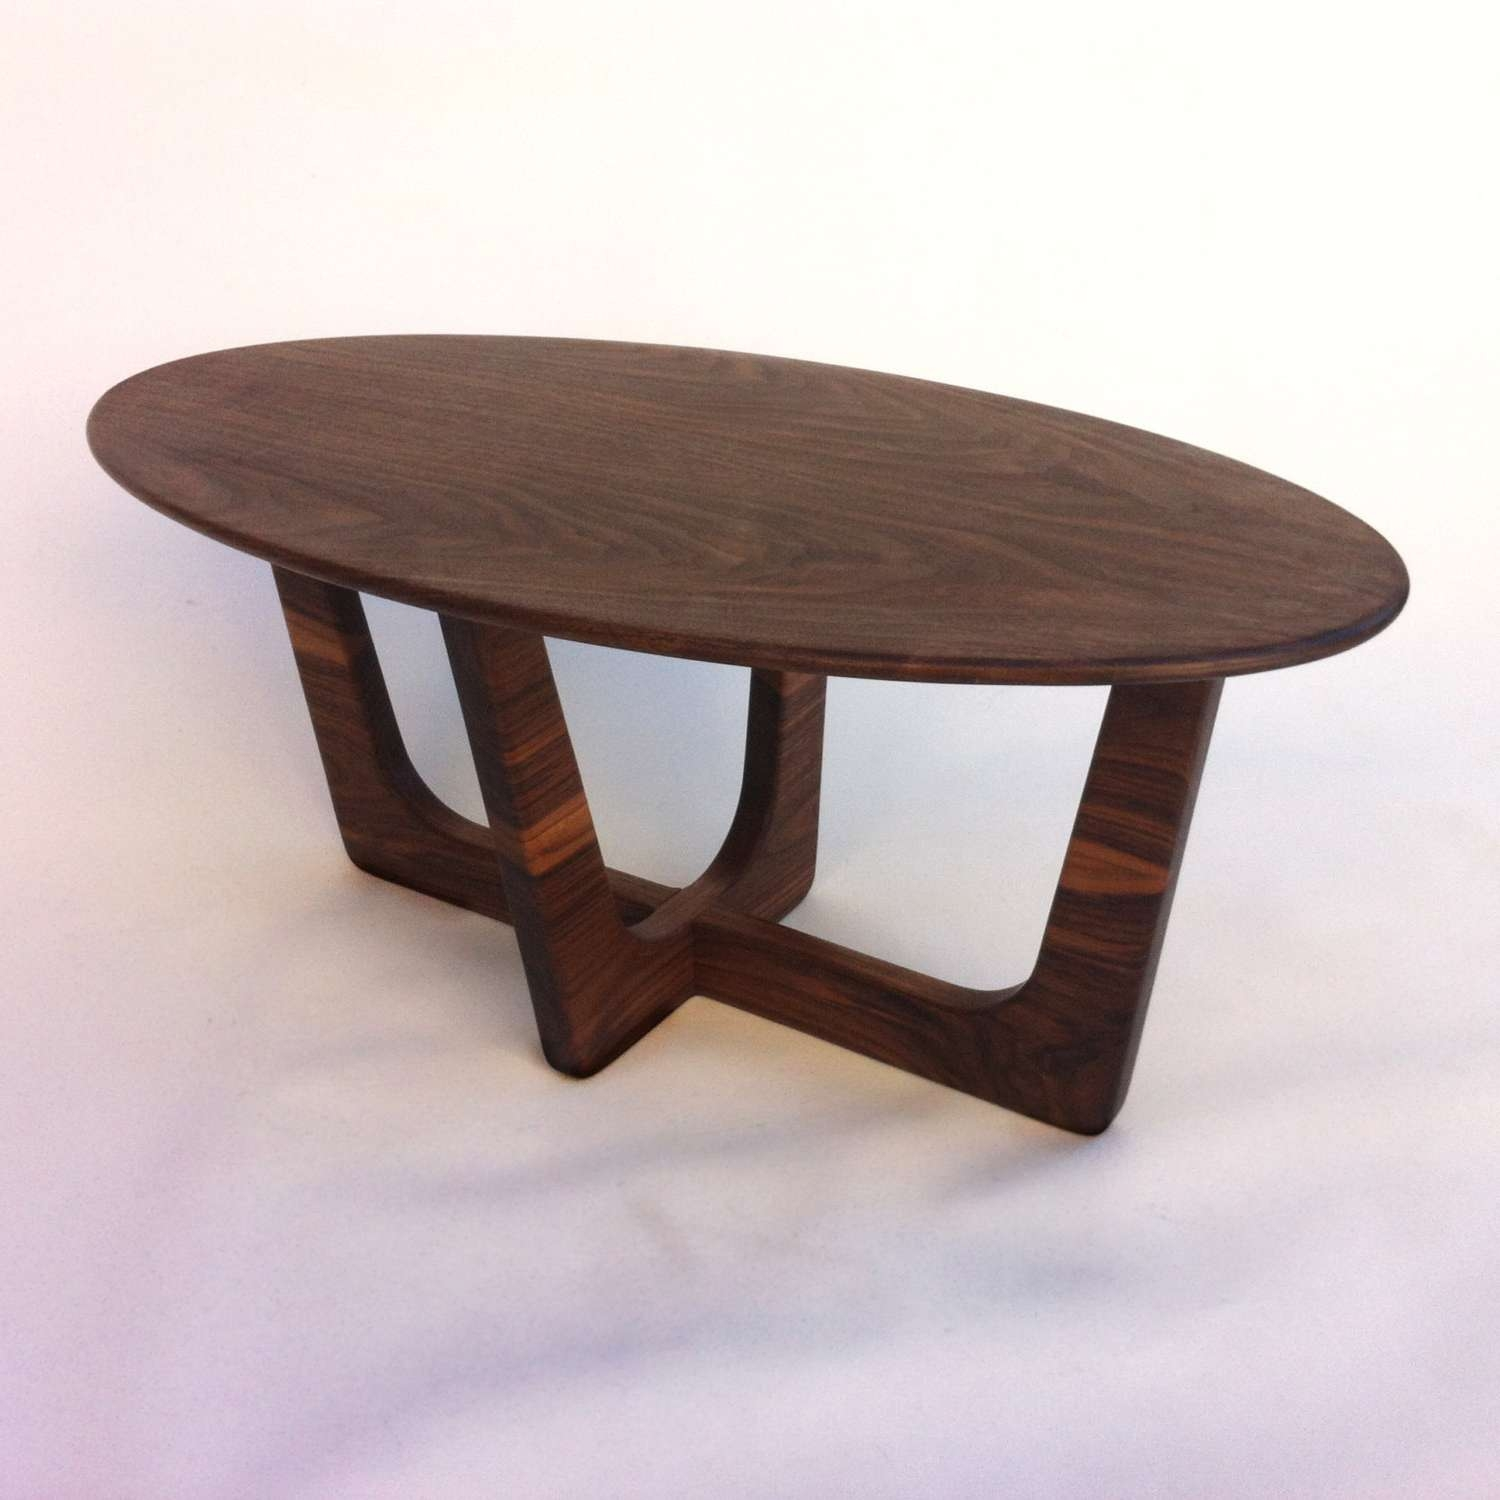 Mid Century Modern Oval Coffee Table Adrian Pearsall Within Widely Used Oval Shaped Coffee Tables (View 12 of 20)